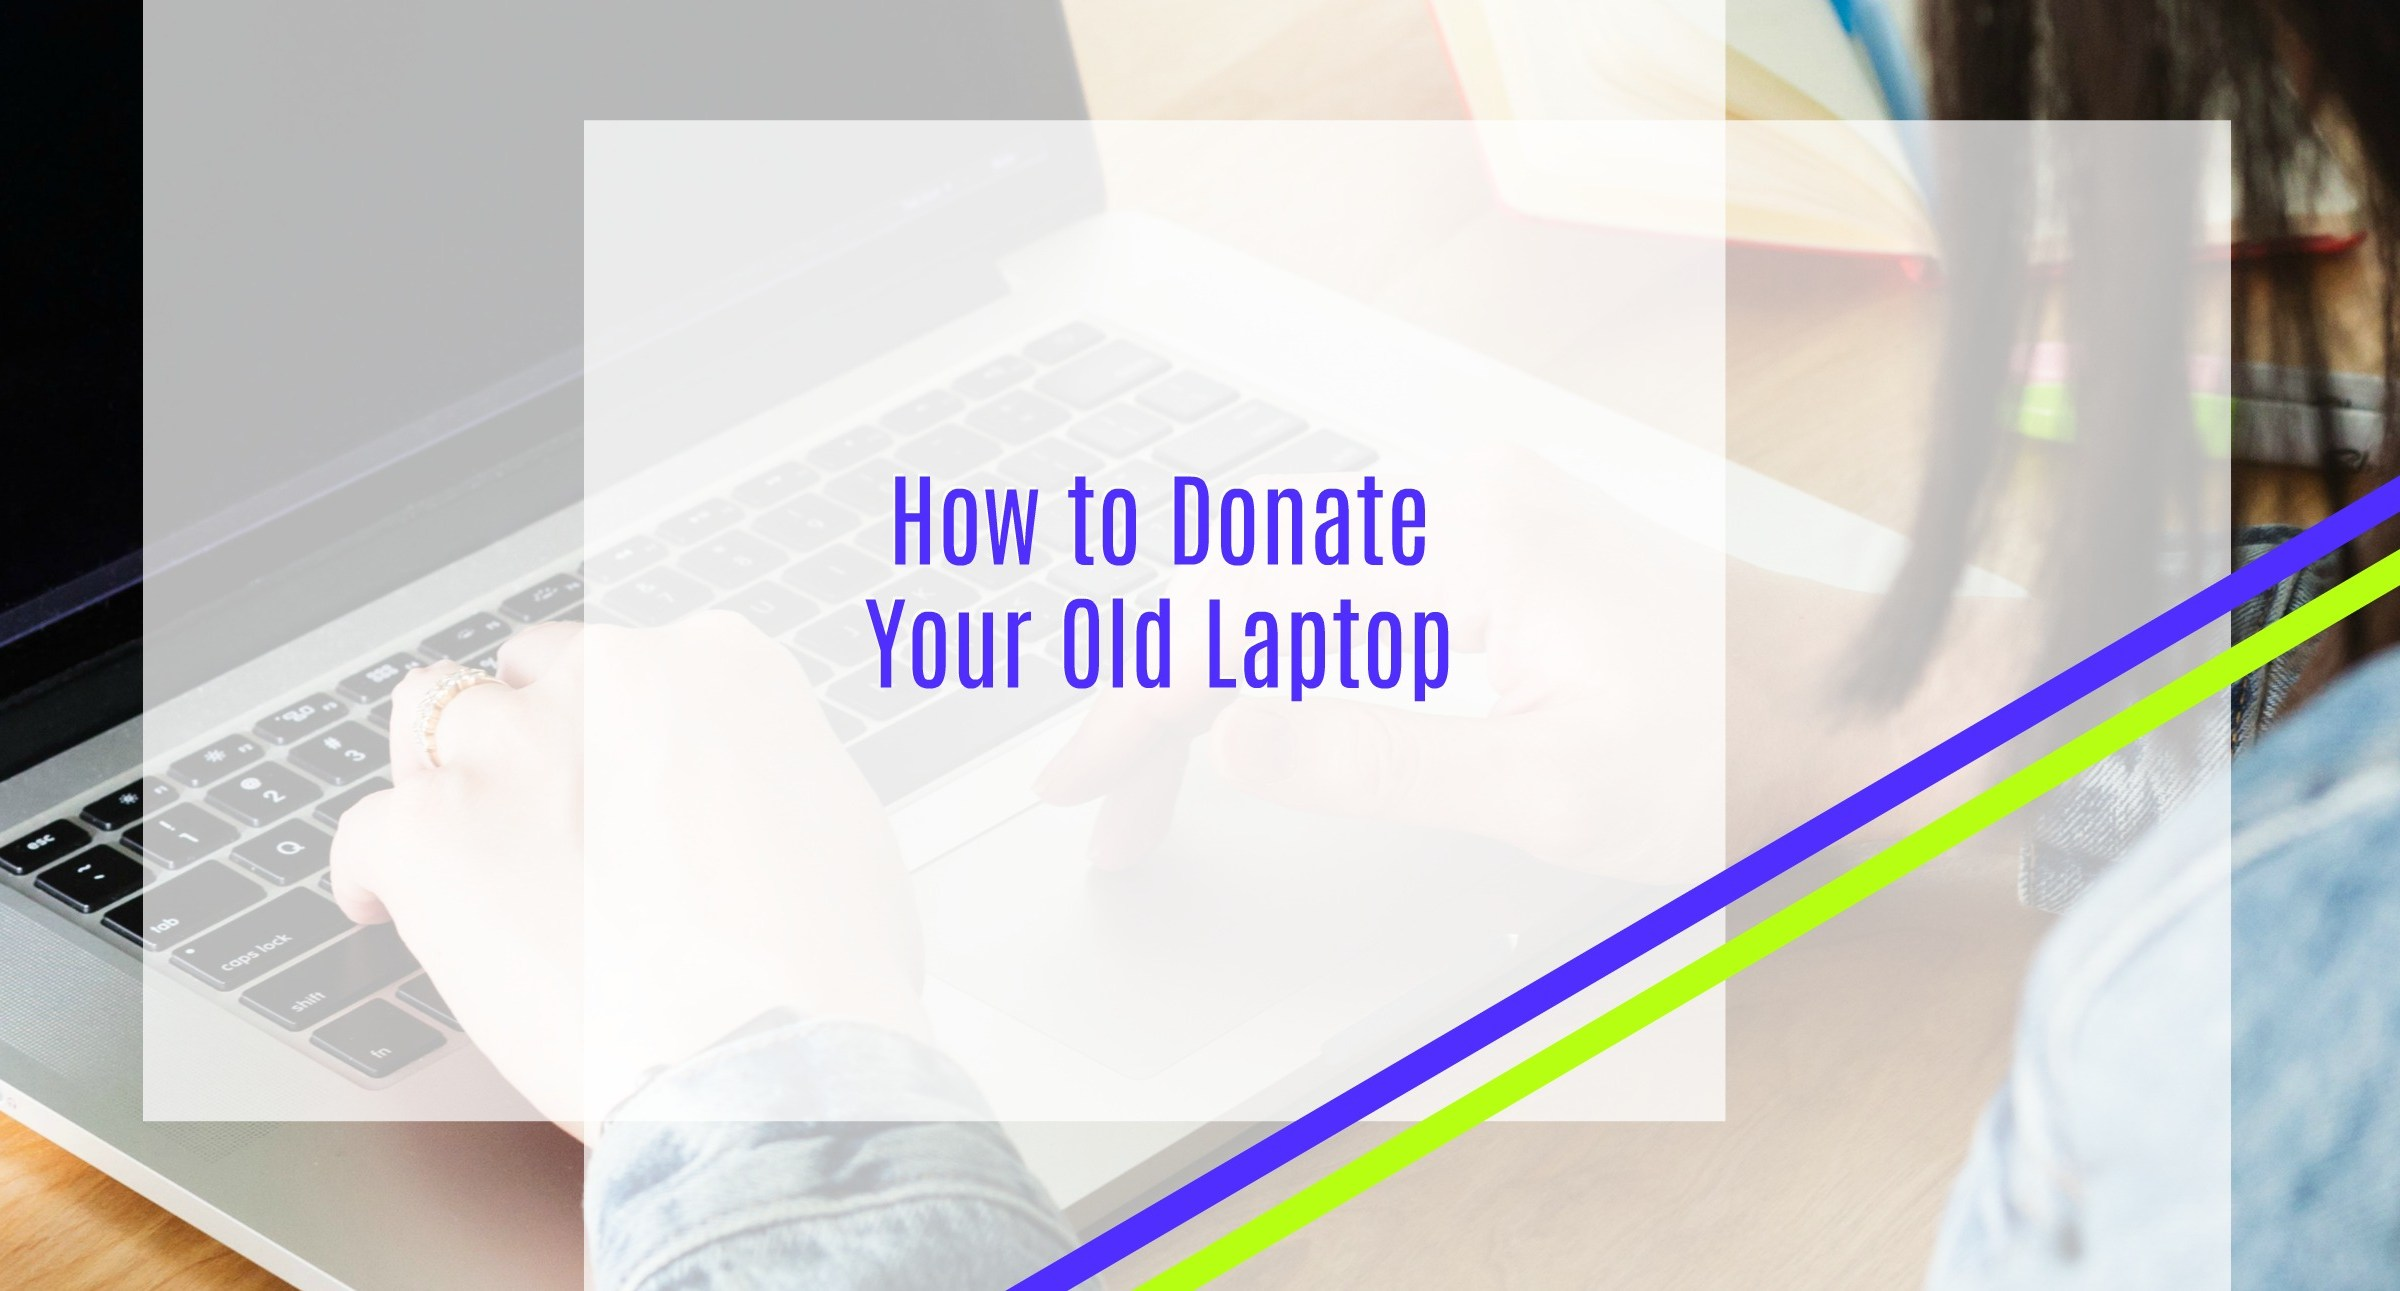 How to Donate Your Old Laptop by Areti Vassou